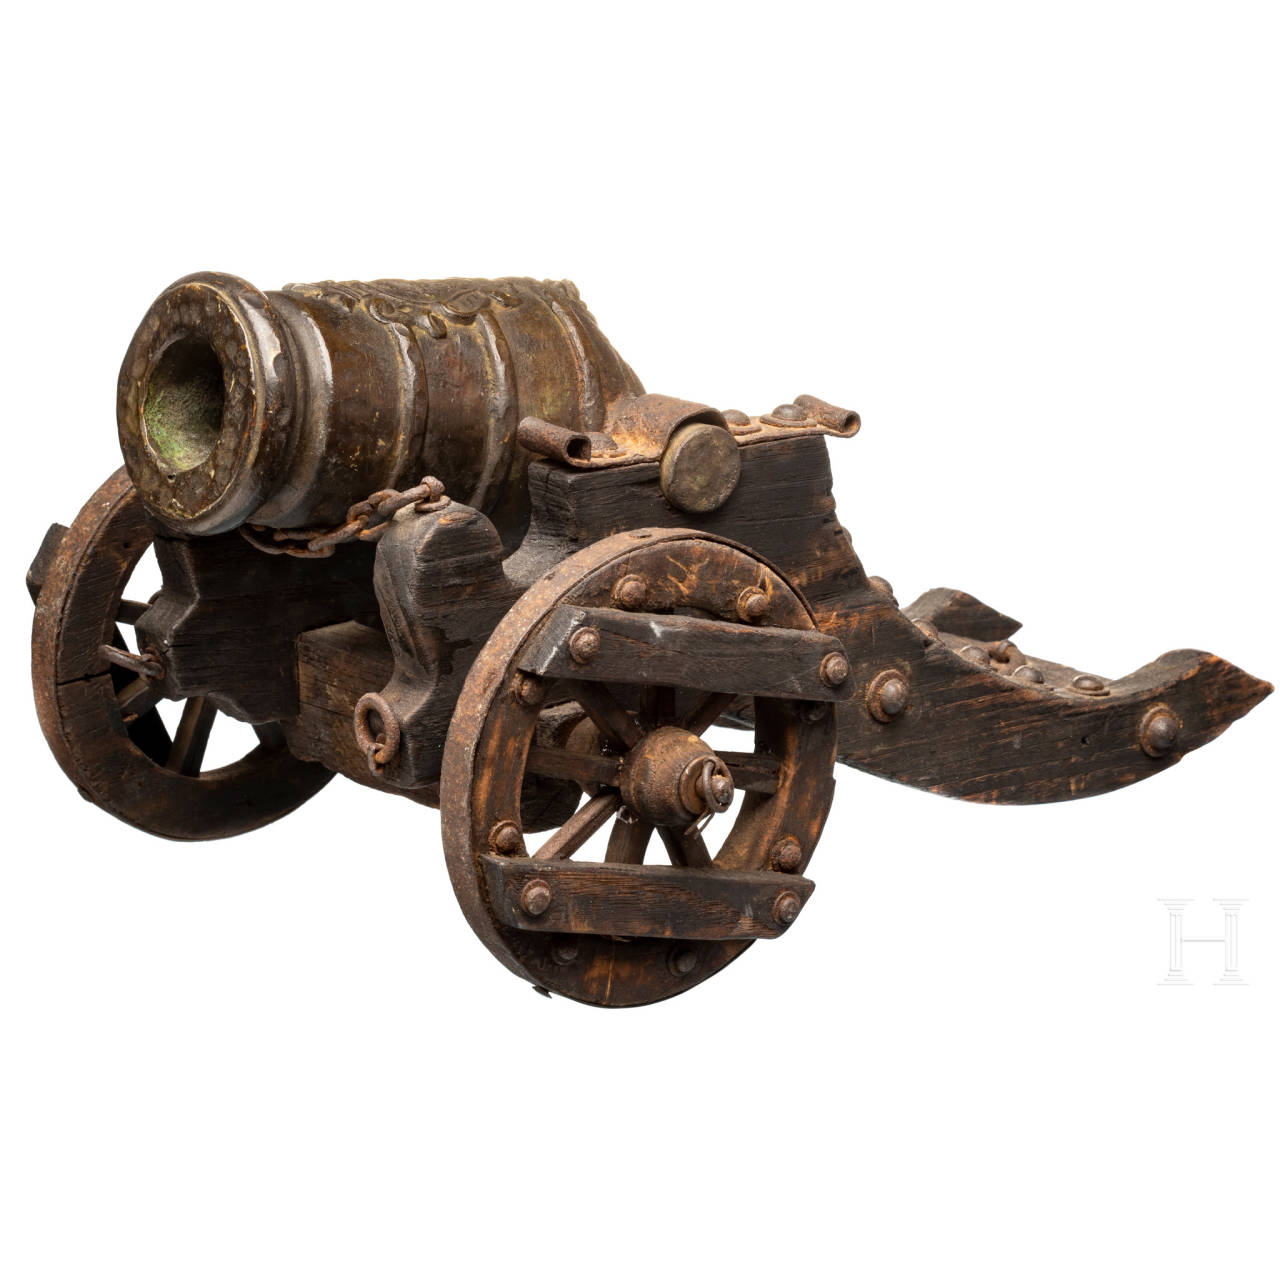 A model cannon, 19th century